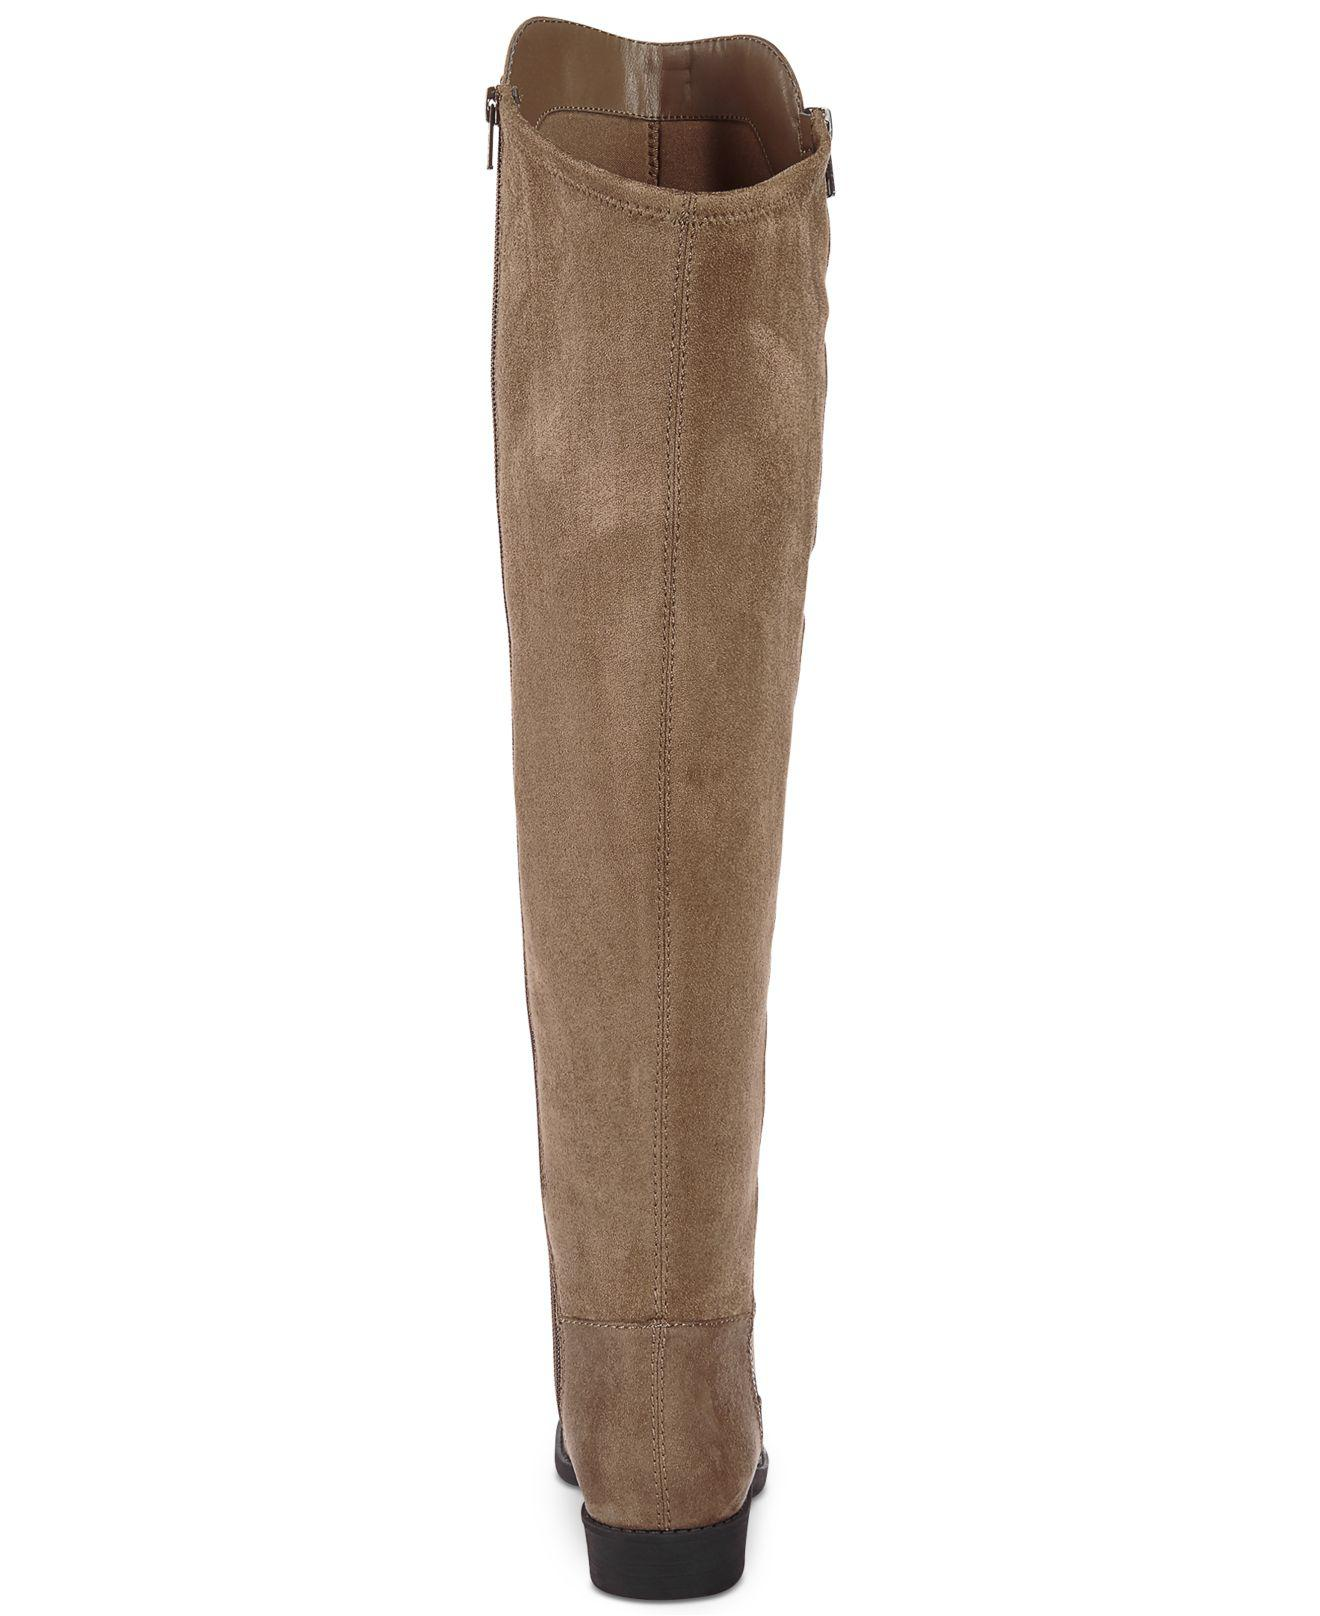 45996973e22 Lyst - Style   Co. Women s Hadleyy Wide-calf Over-the-knee Boots in ...